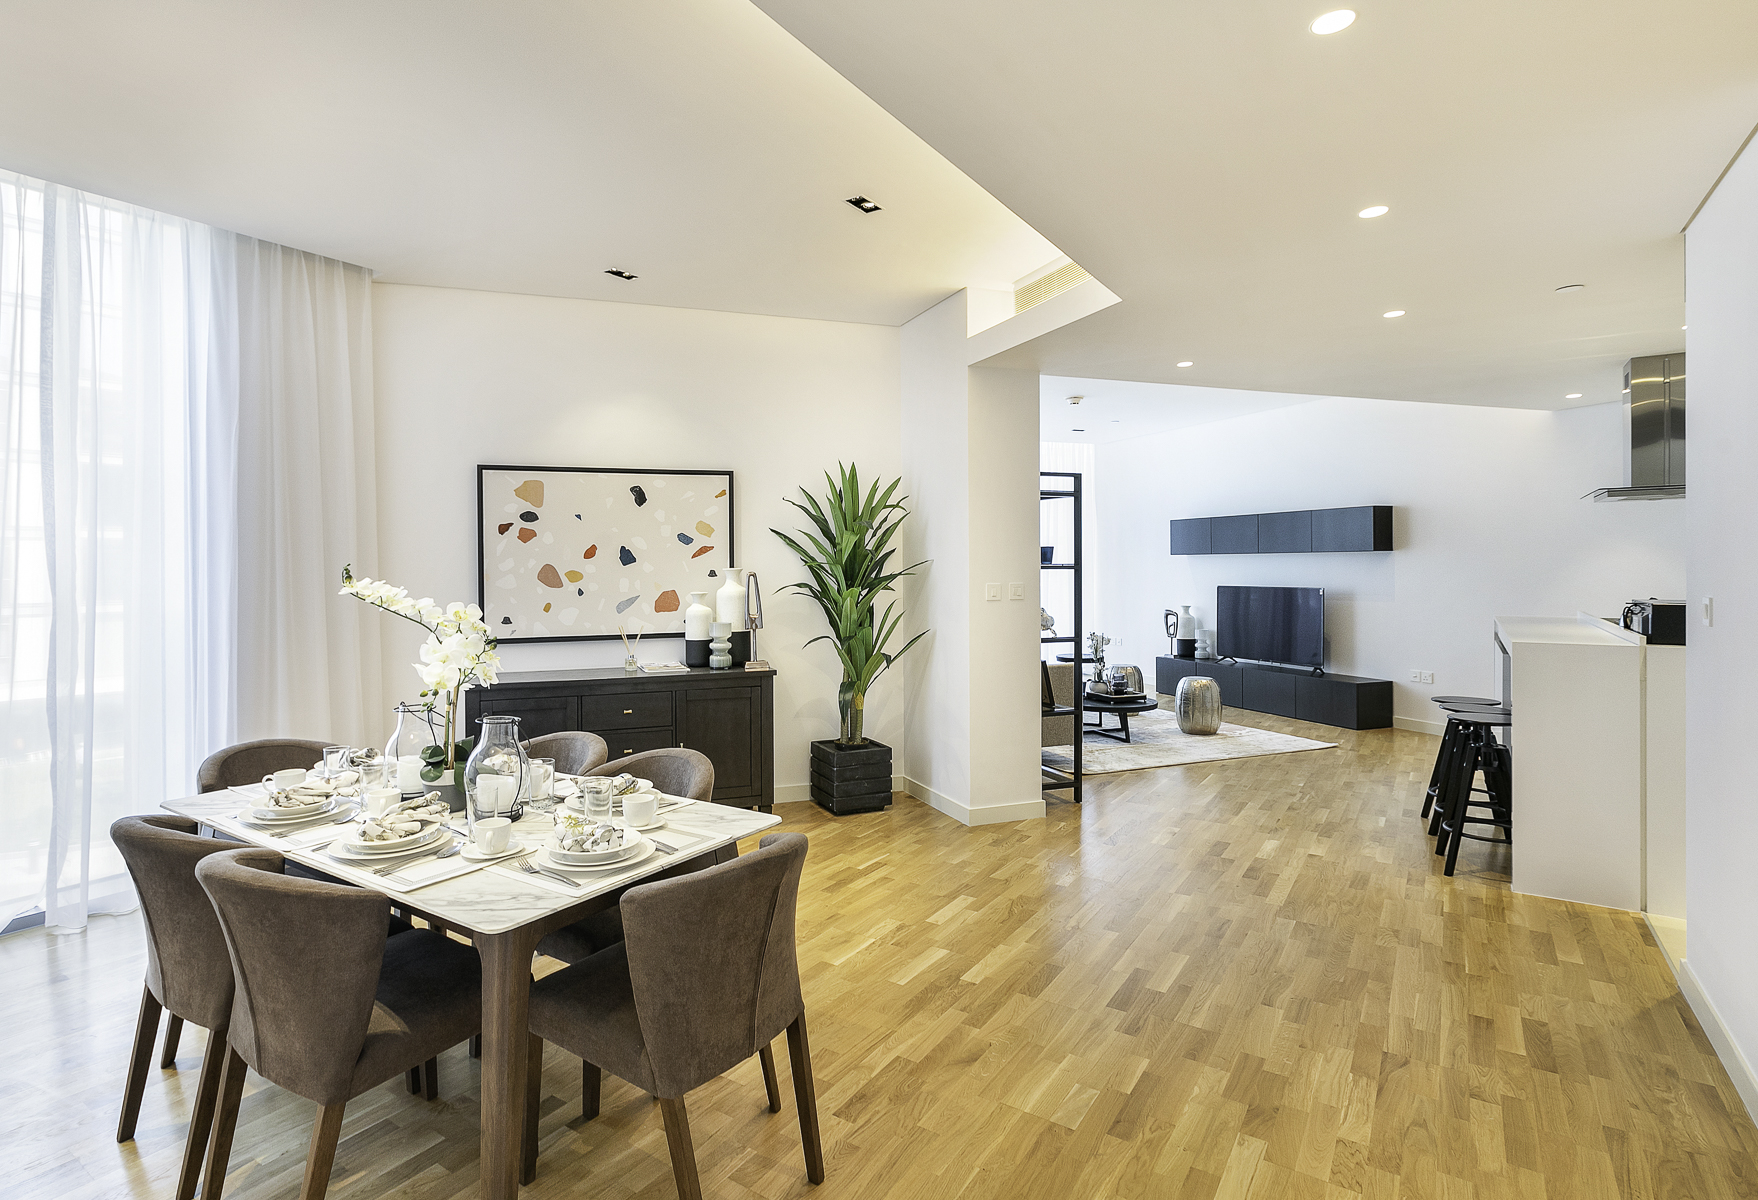 Experience the Bluewaters lifestyle On This All New 1 Bed in Building 5 photo 21298940